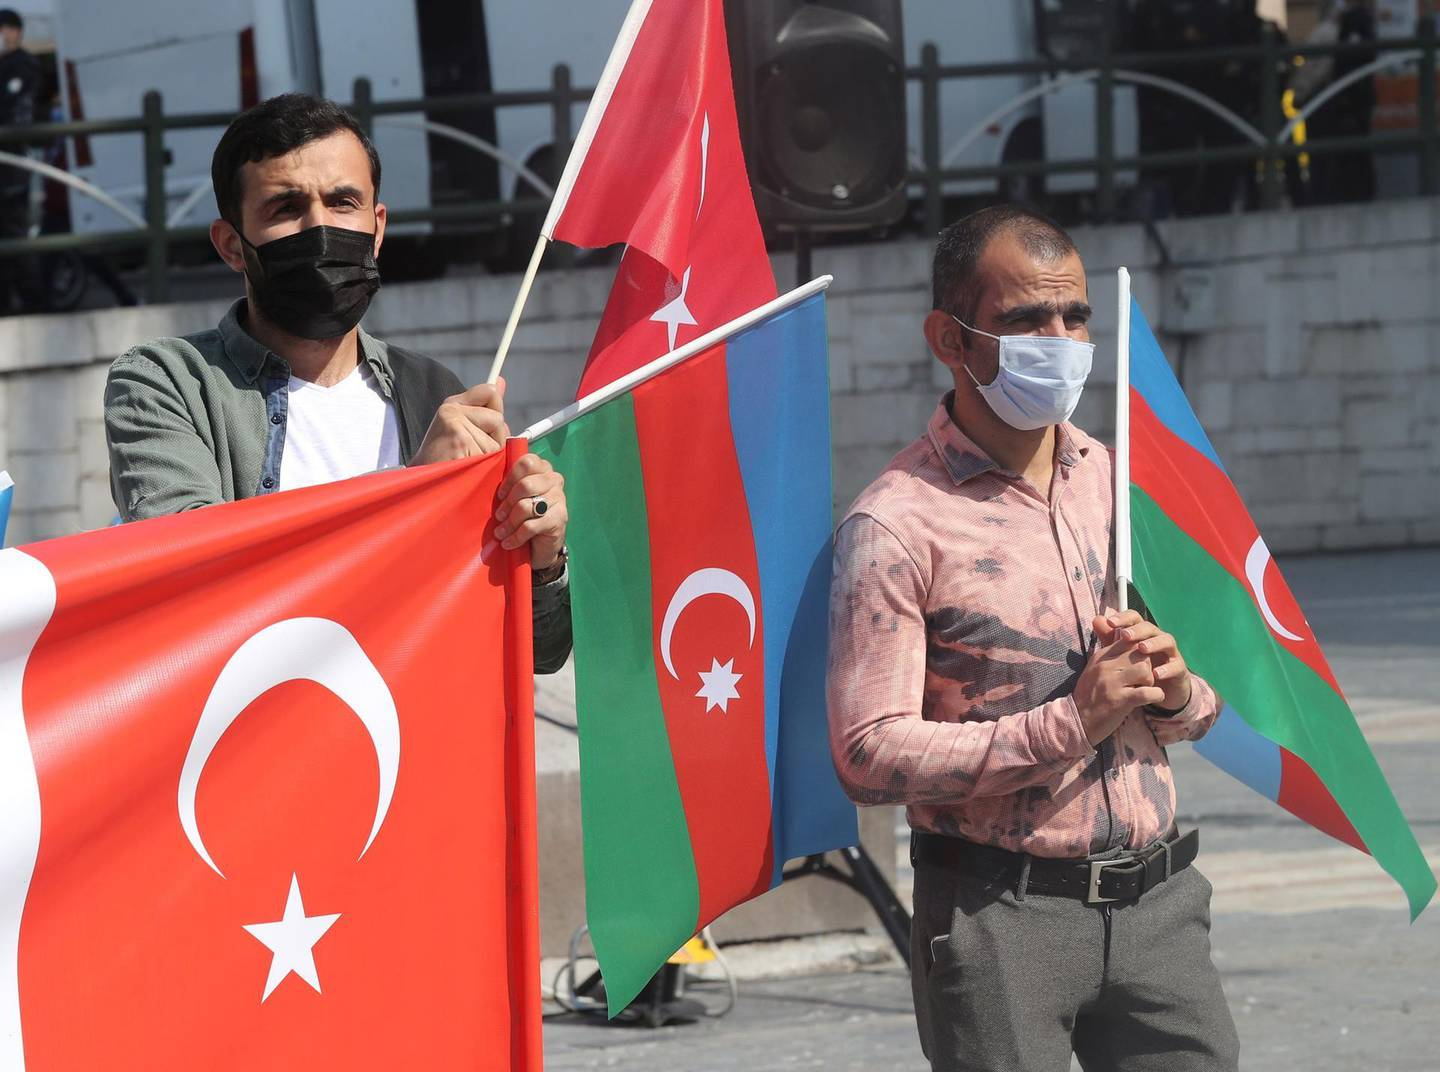 Turkish demonstrators participate in a demonstration in support of Azerbaijan against Armenia in Ankara on October 1, 2020.  Heavy shelling between Armenian and Azerbaijani forces persisted on October 1, 2020 despite fresh calls from world leaders for an end to days of fighting over the disputed Nagorny Karabakh region. The rival Caucasus nations have been locked in a bitter stalemate over the Karabakh region since the collapse of the Soviet Union when the ethnic Armenian province broke away from Azerbaijan. / AFP / Adem ALTAN